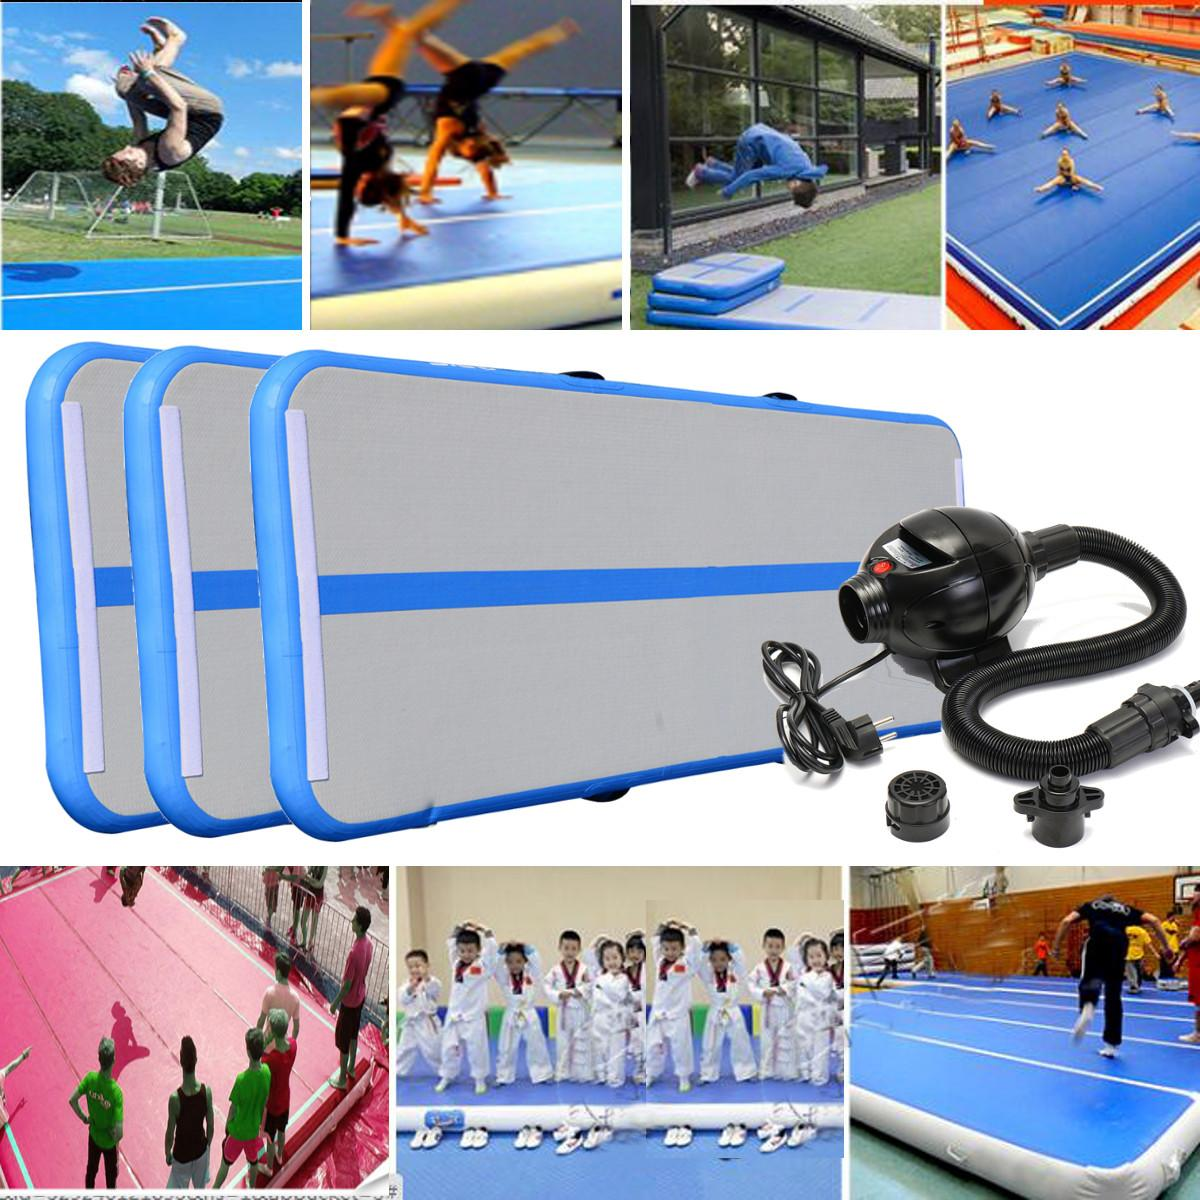 Gofun AirTrack Inflatable Air Track Gym Cheerleading Tumbling Gymnastics Exercise Mat Balance Beam Pad Cheer Skills Training gofun airtrack 10ft x 3 ft air tumbling track mat gymnastics exercise pad inflatable gym training mats balance beam 110v air